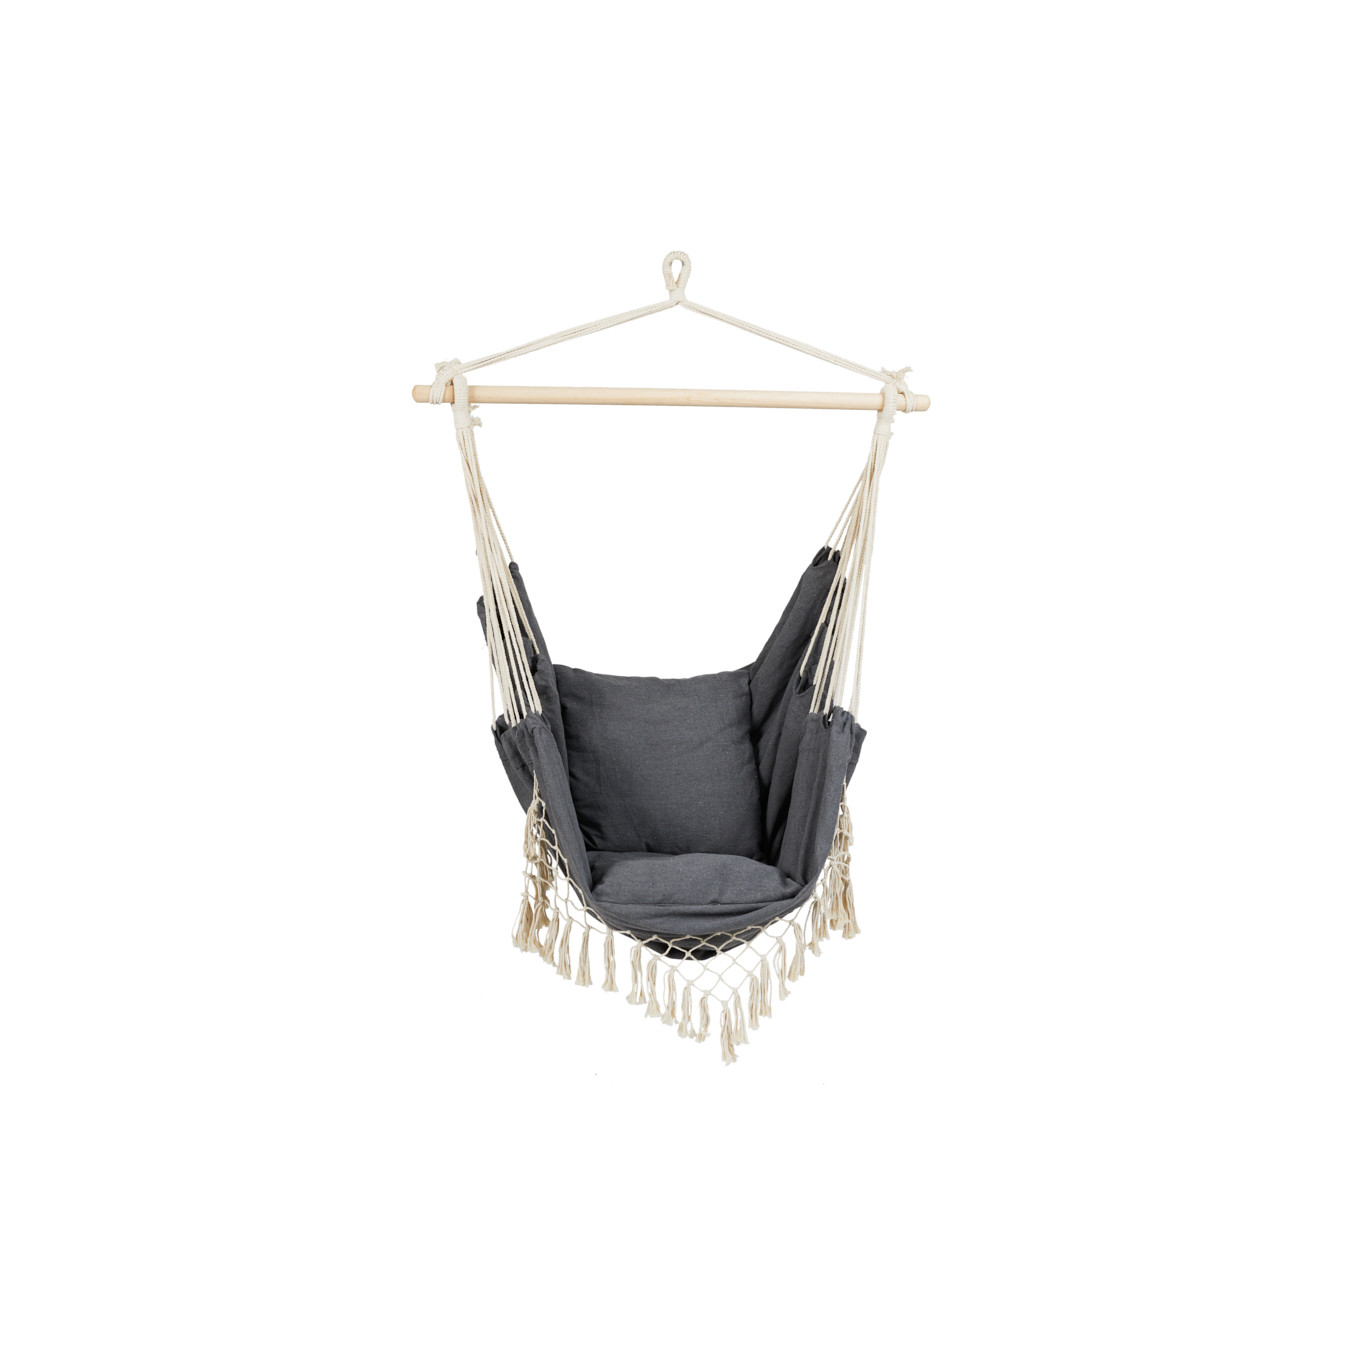 Hanging Chair with Cushions | Grey